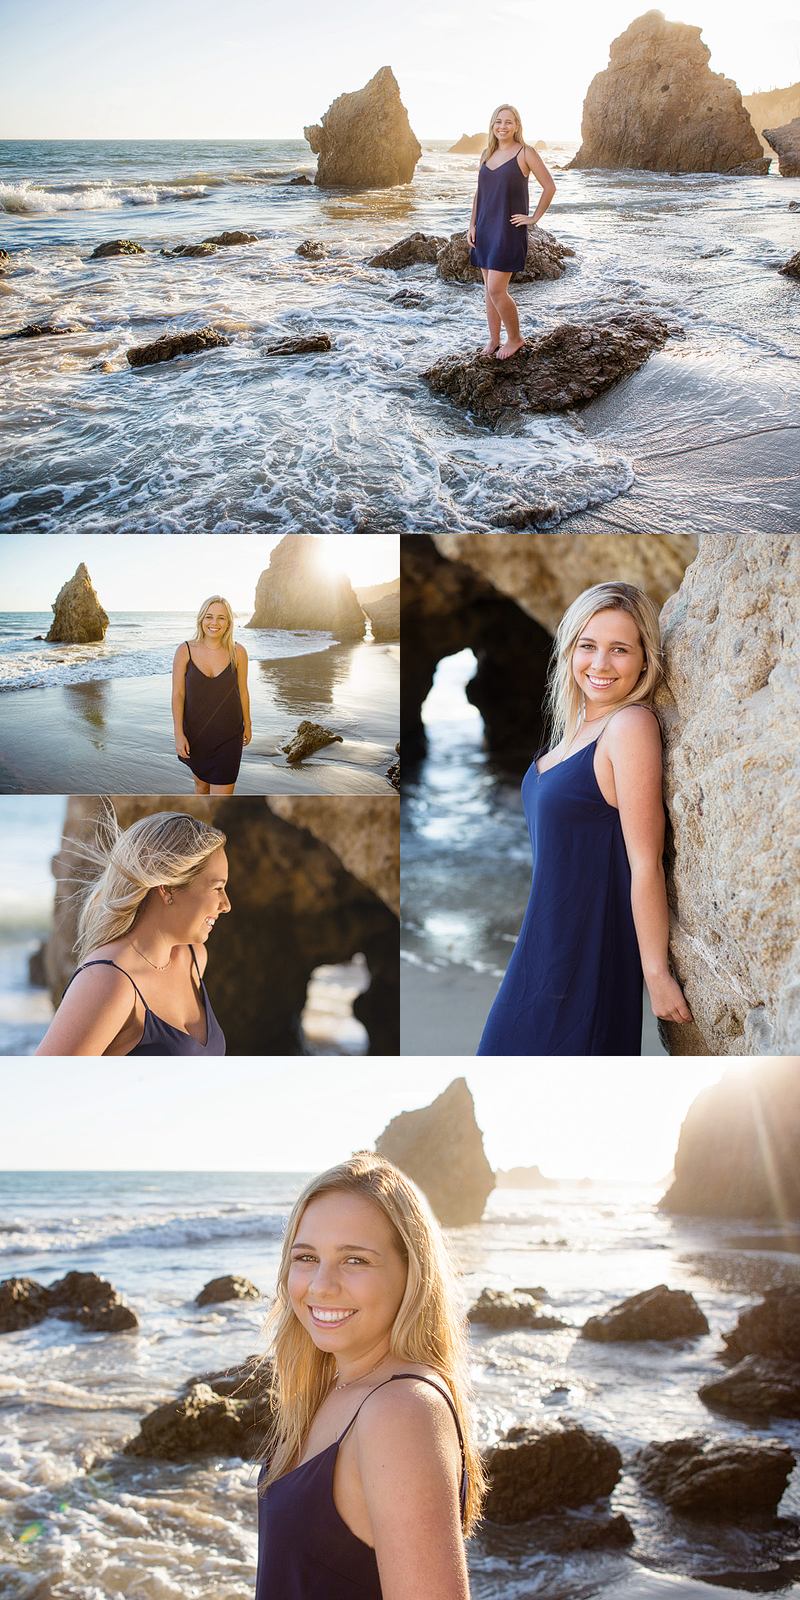 Westlake Village High school senior portraits